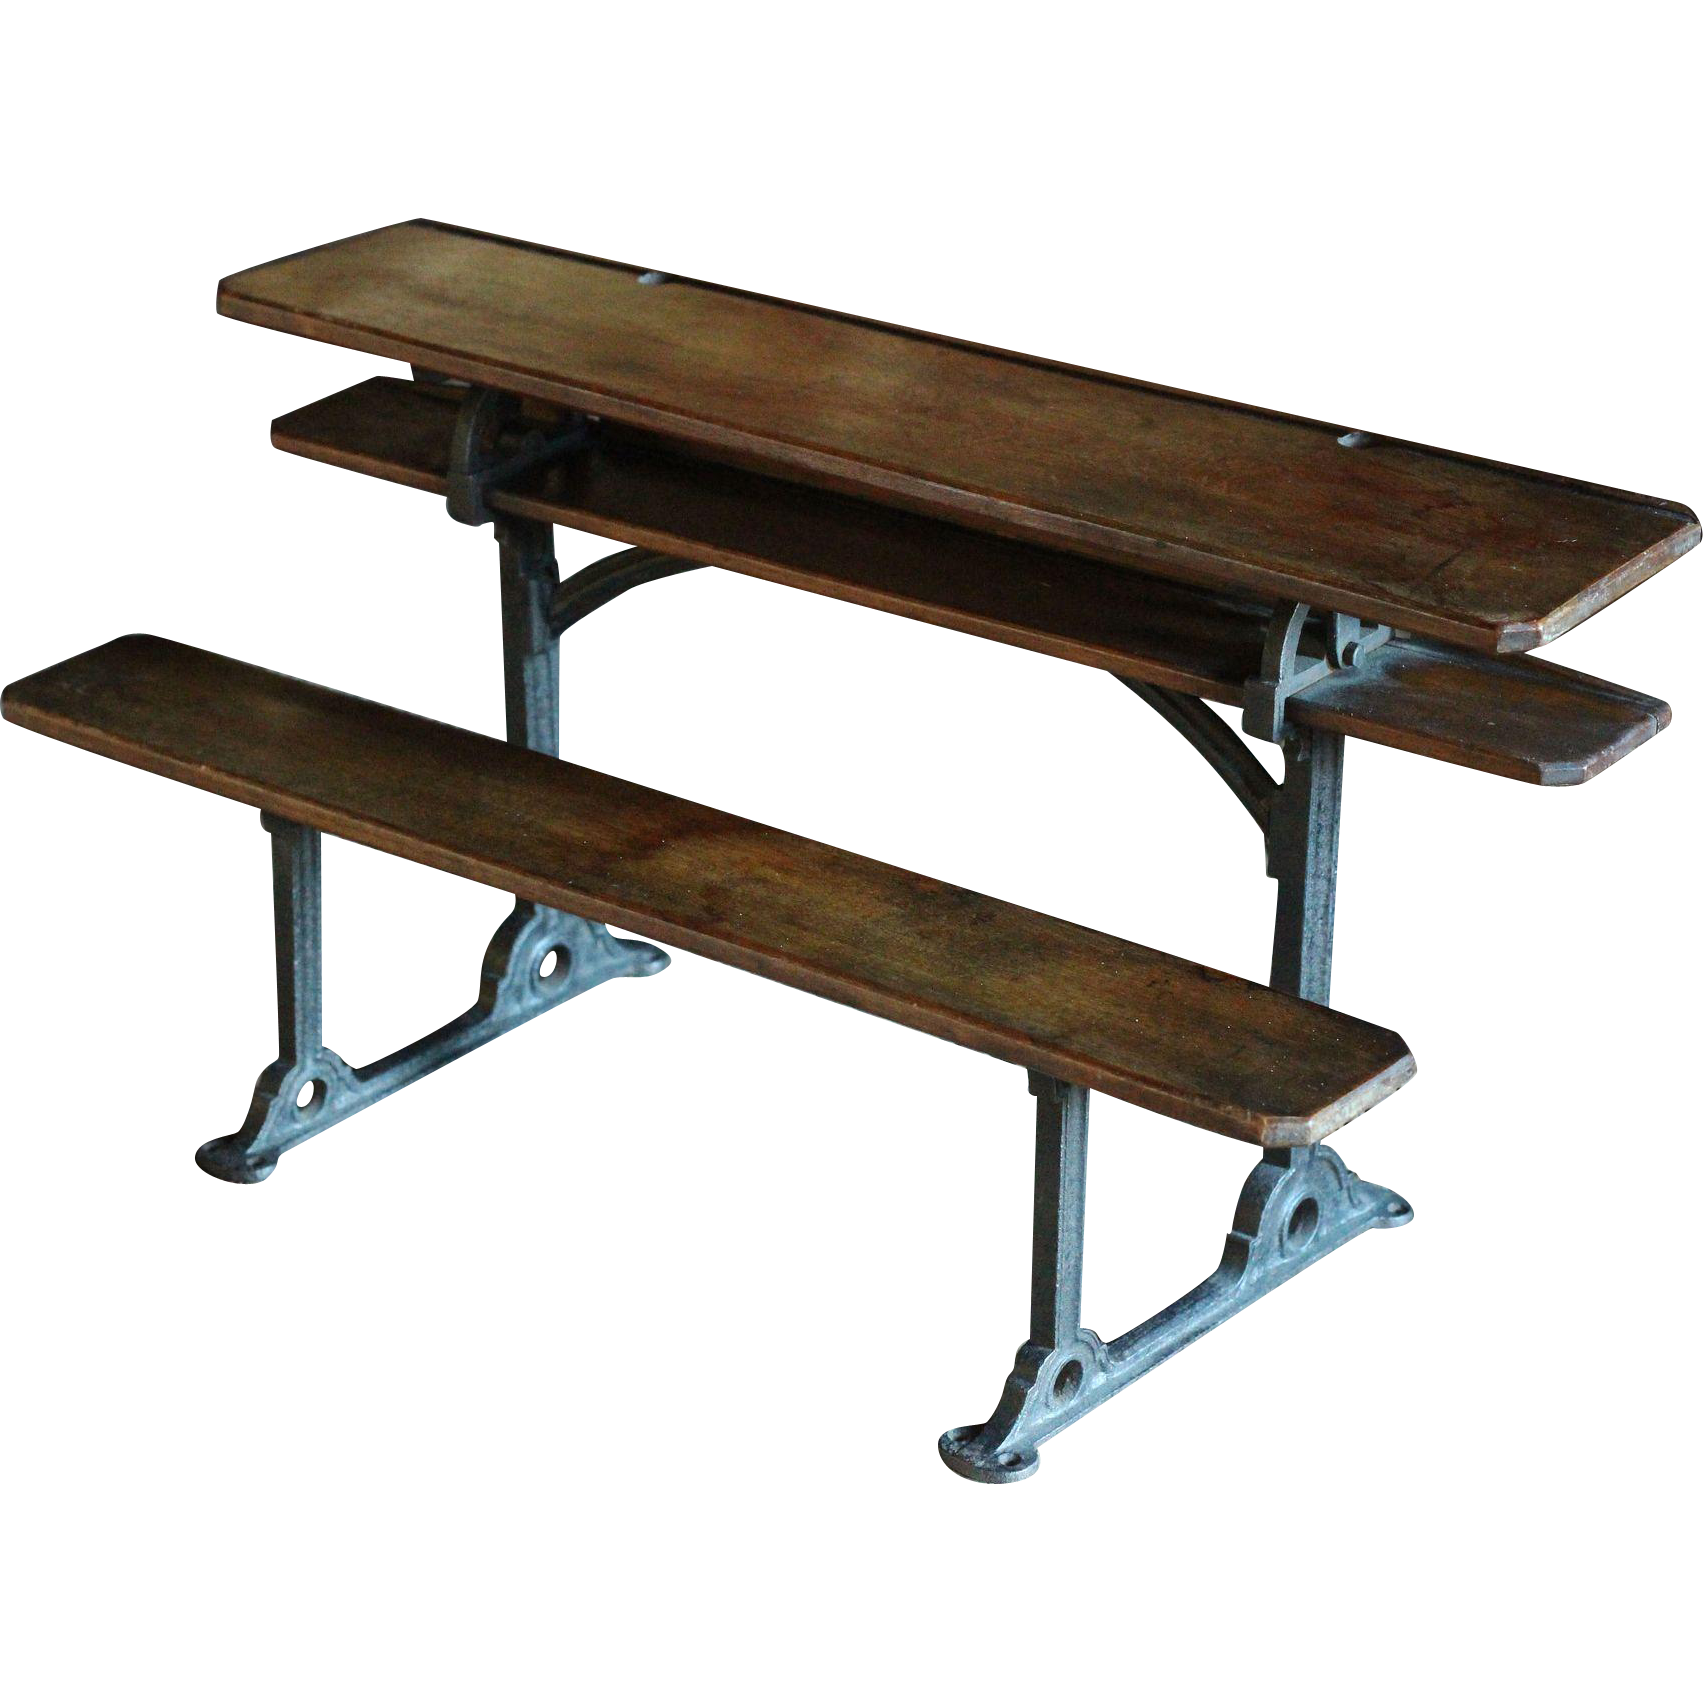 RARE Antique Victorian English SCALE Model - School Desk Row - 19th Century SALESMAN'S Sample / Apprentice Piece